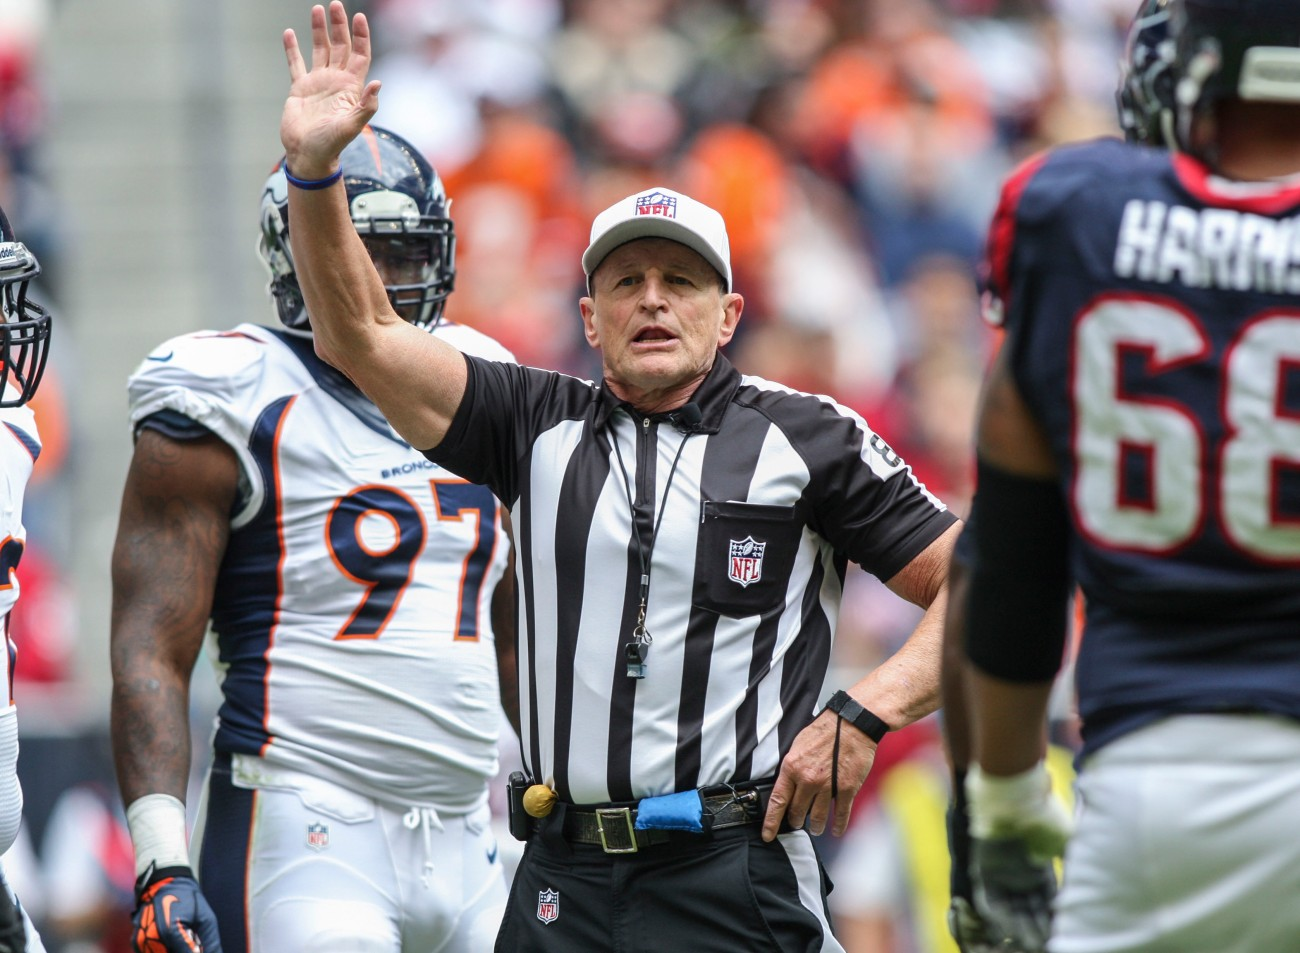 The Patriots Might Be In Trouble On Sunday With Ed Hochuli As